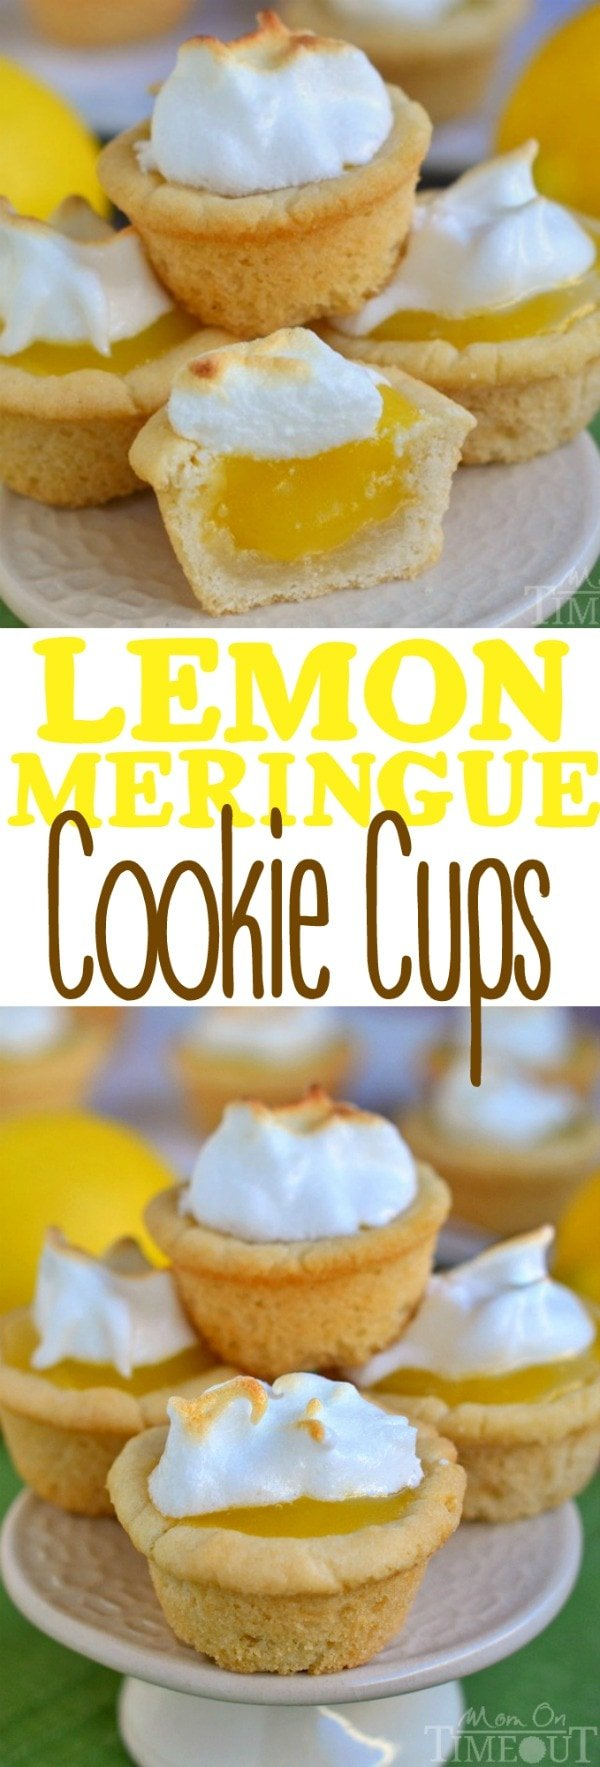 Lemon Meringue Cookie Cups are the perfect dessert for my lemon lovers out there! Sugar cookie cups pair perfectly with the refreshingly tart lemon curd filling in these sweet little Lemon Meringue Cookie Cups!The lemon curd filling is made in the microwave and is going to be your new favorite thing - promise. I love these delightful little cups for parties and entertaining. They are so pretty and an absolute crowd pleaser. // Mom On Timeout #lemon #cookie #cookies #cups #lemoncurd #curd #meringue